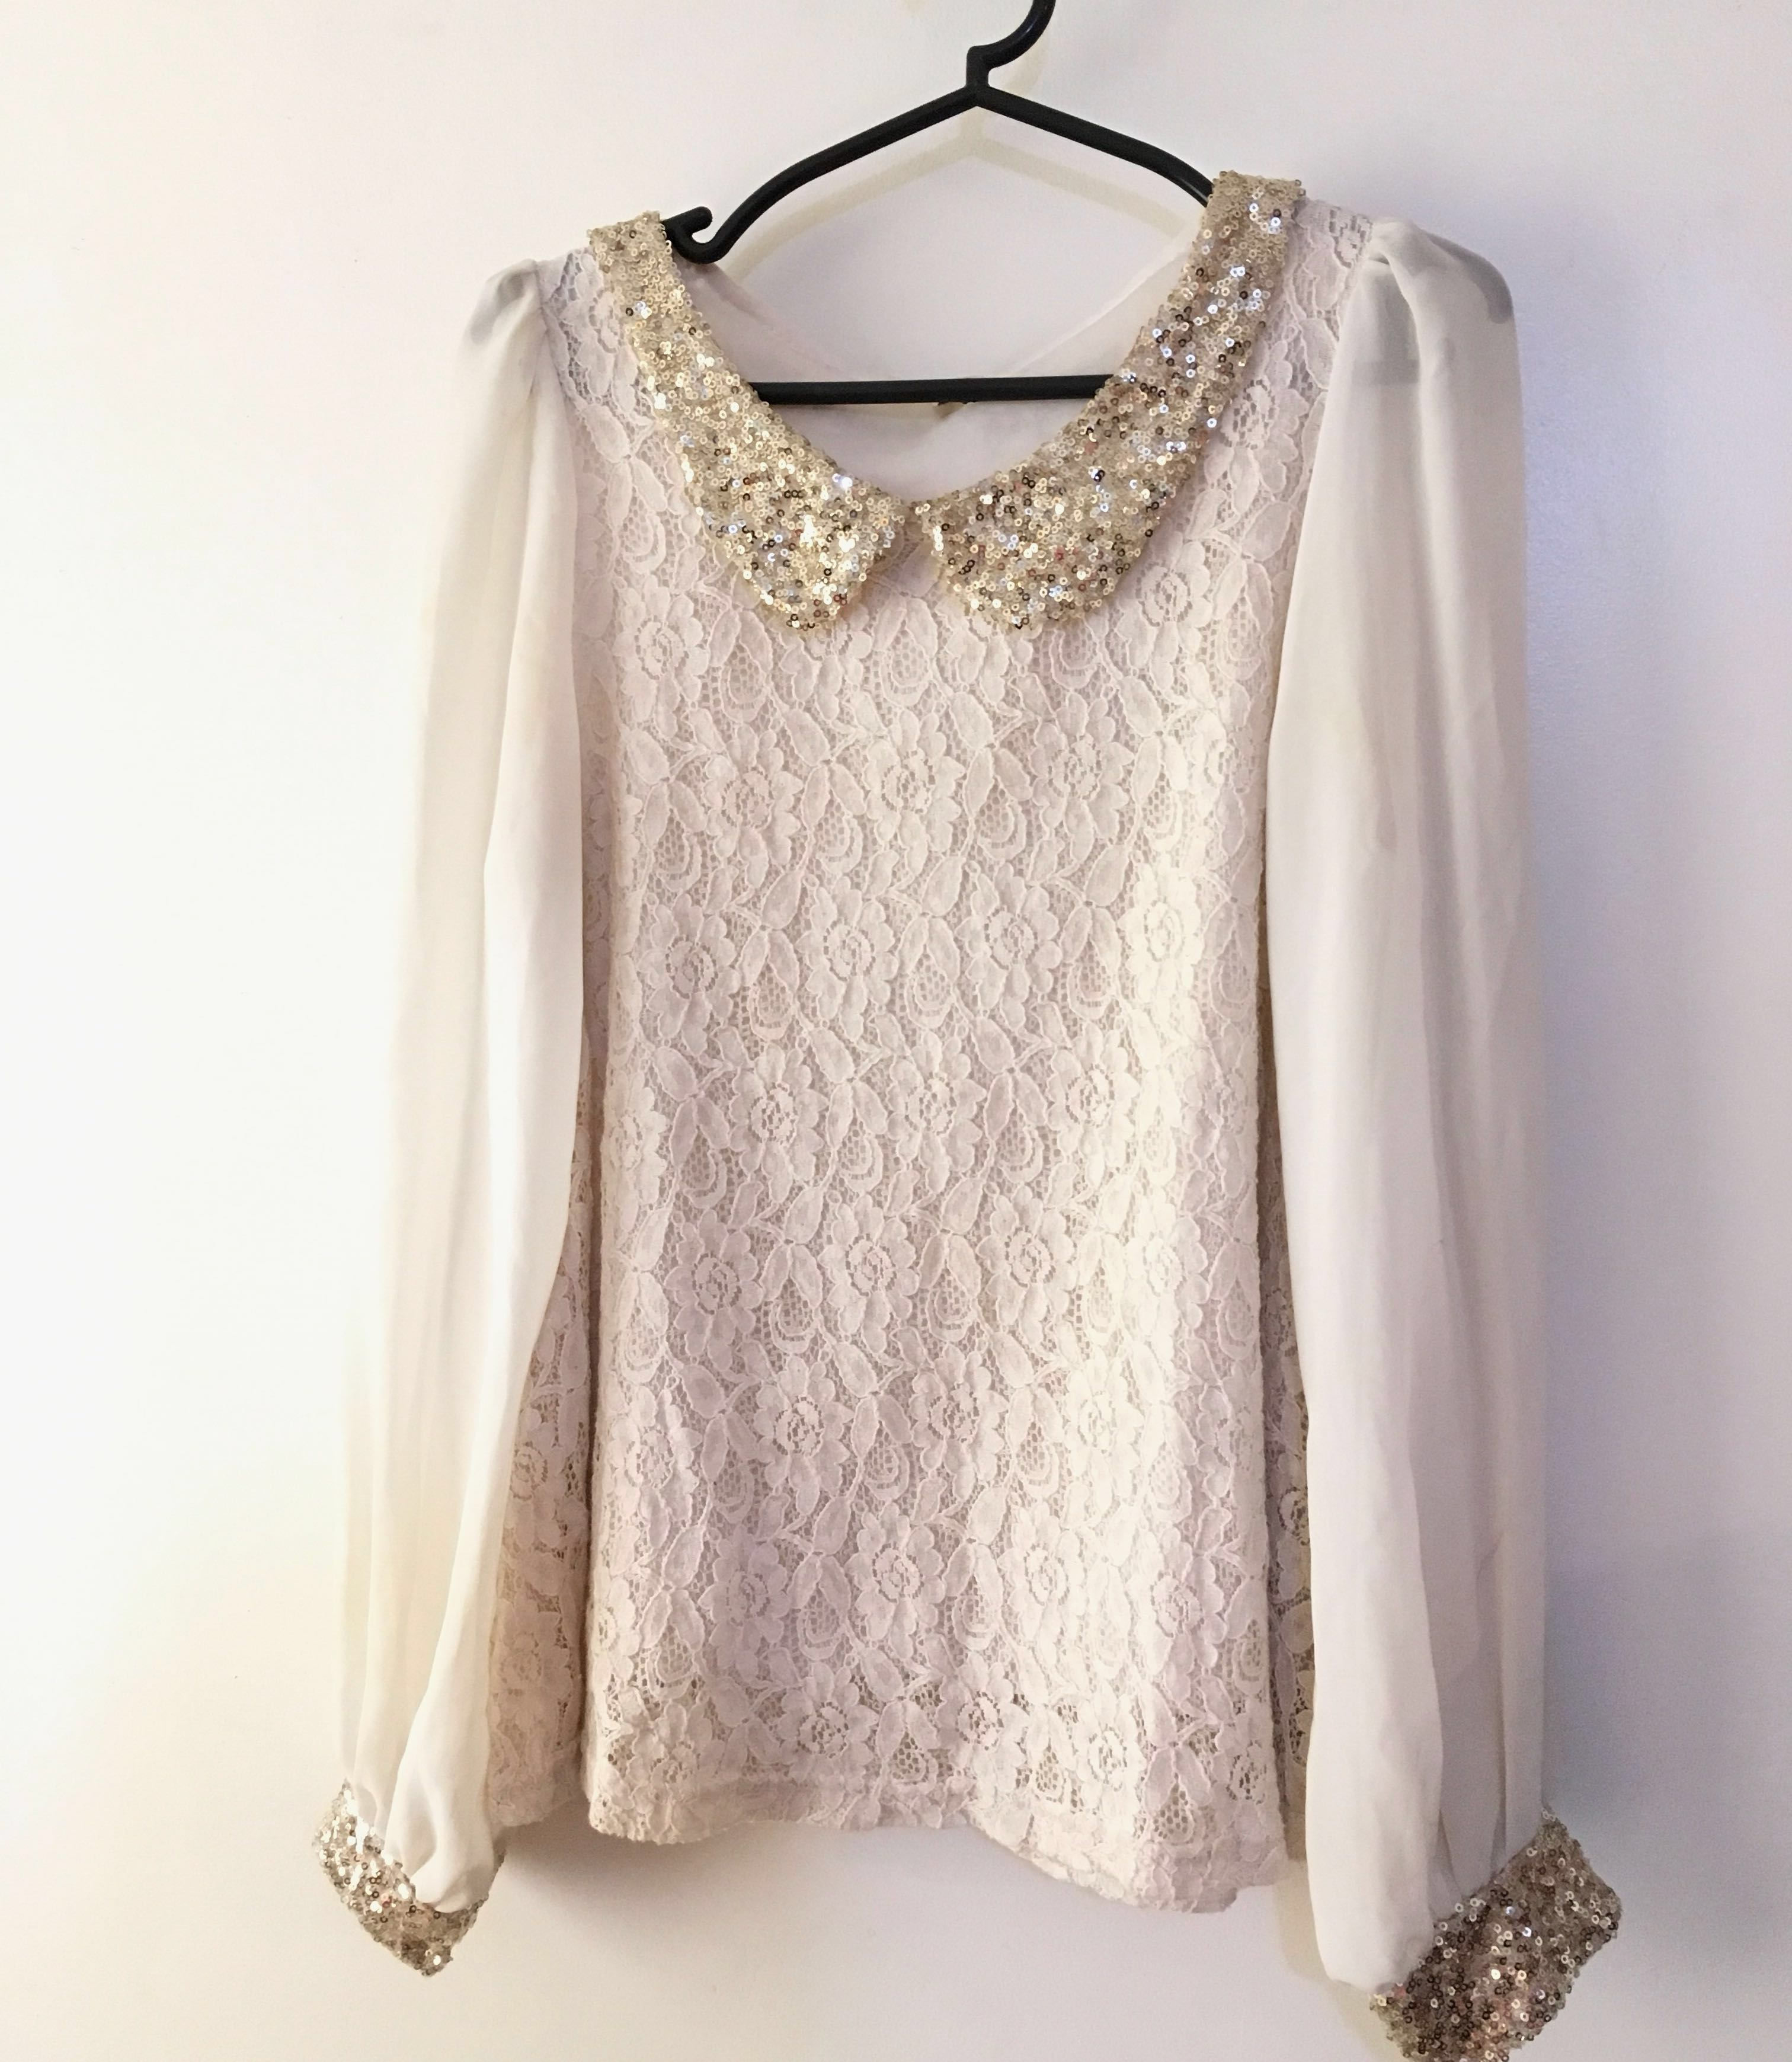 Charity Sale! Vintage Lace Victorian Style Gold Sequenced Blouse Women's Size Medium Top